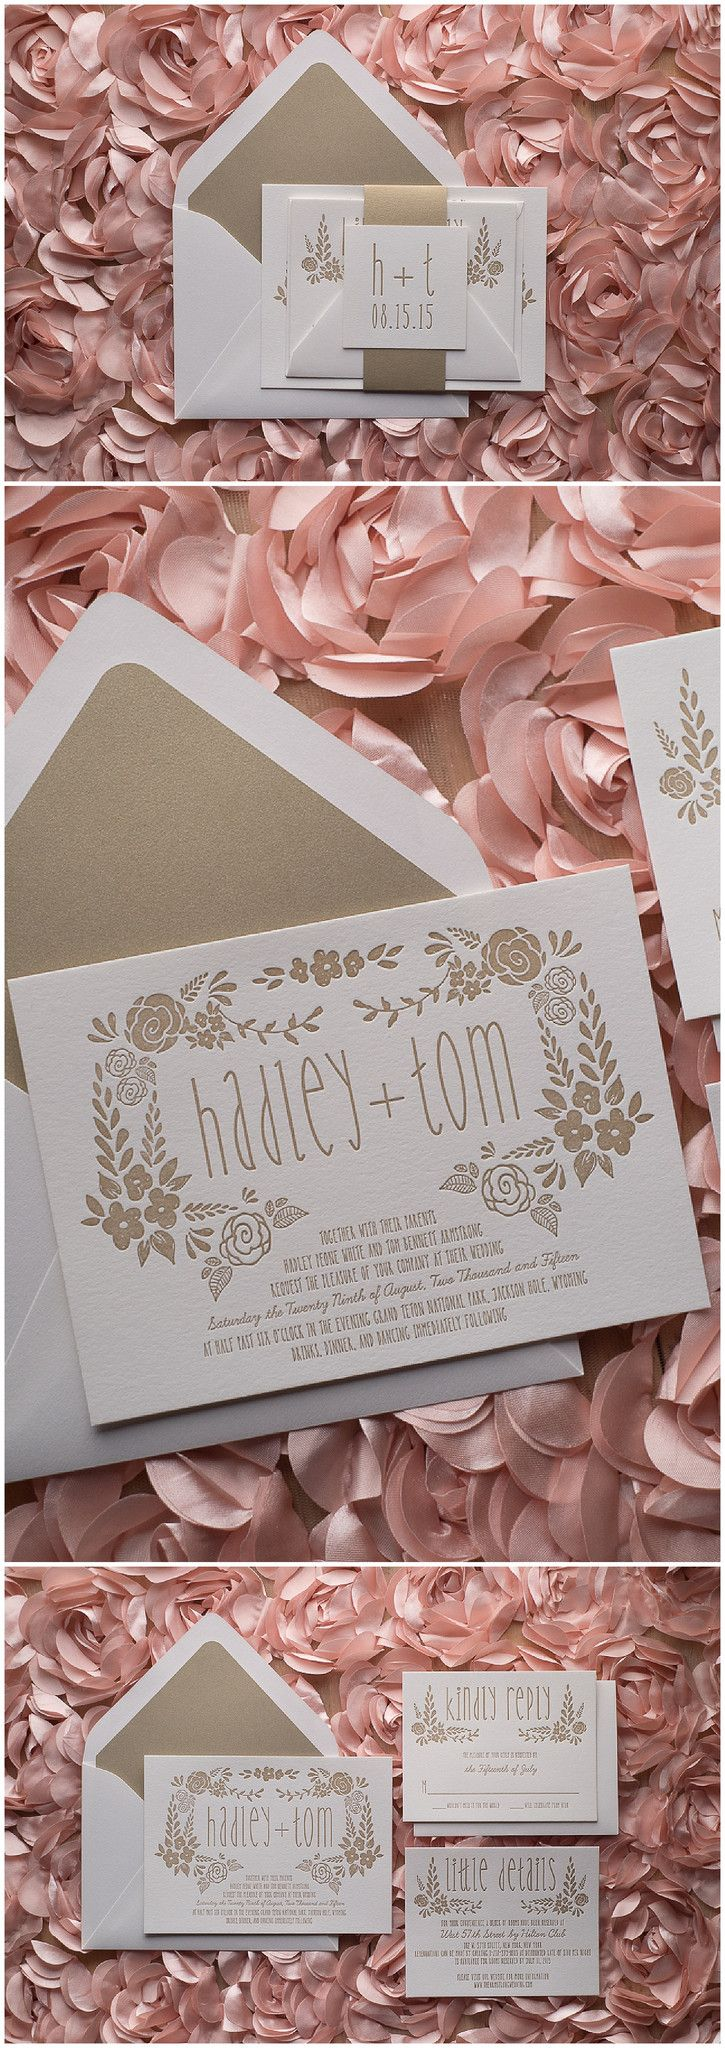 The Perfect White and Gold Romantic Letterpress Whimsical Wedding Invitation!   Hadley Suite, Letterpress, Warm Gold, Romantic, Floral Details, White and Gold, Wedding Invitations